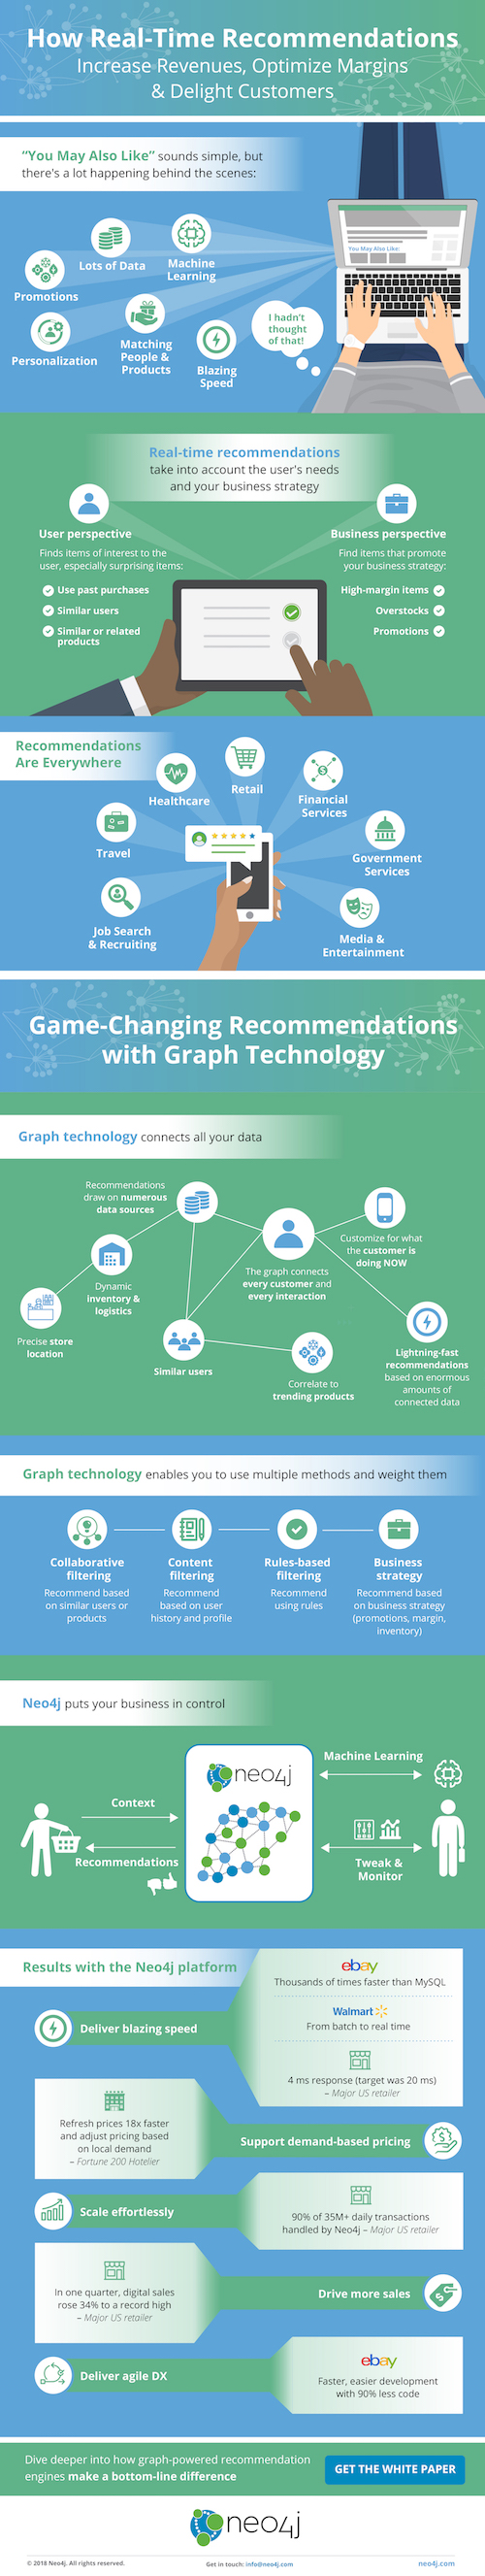 Read this infographic on real-time recommendations using graph technology.